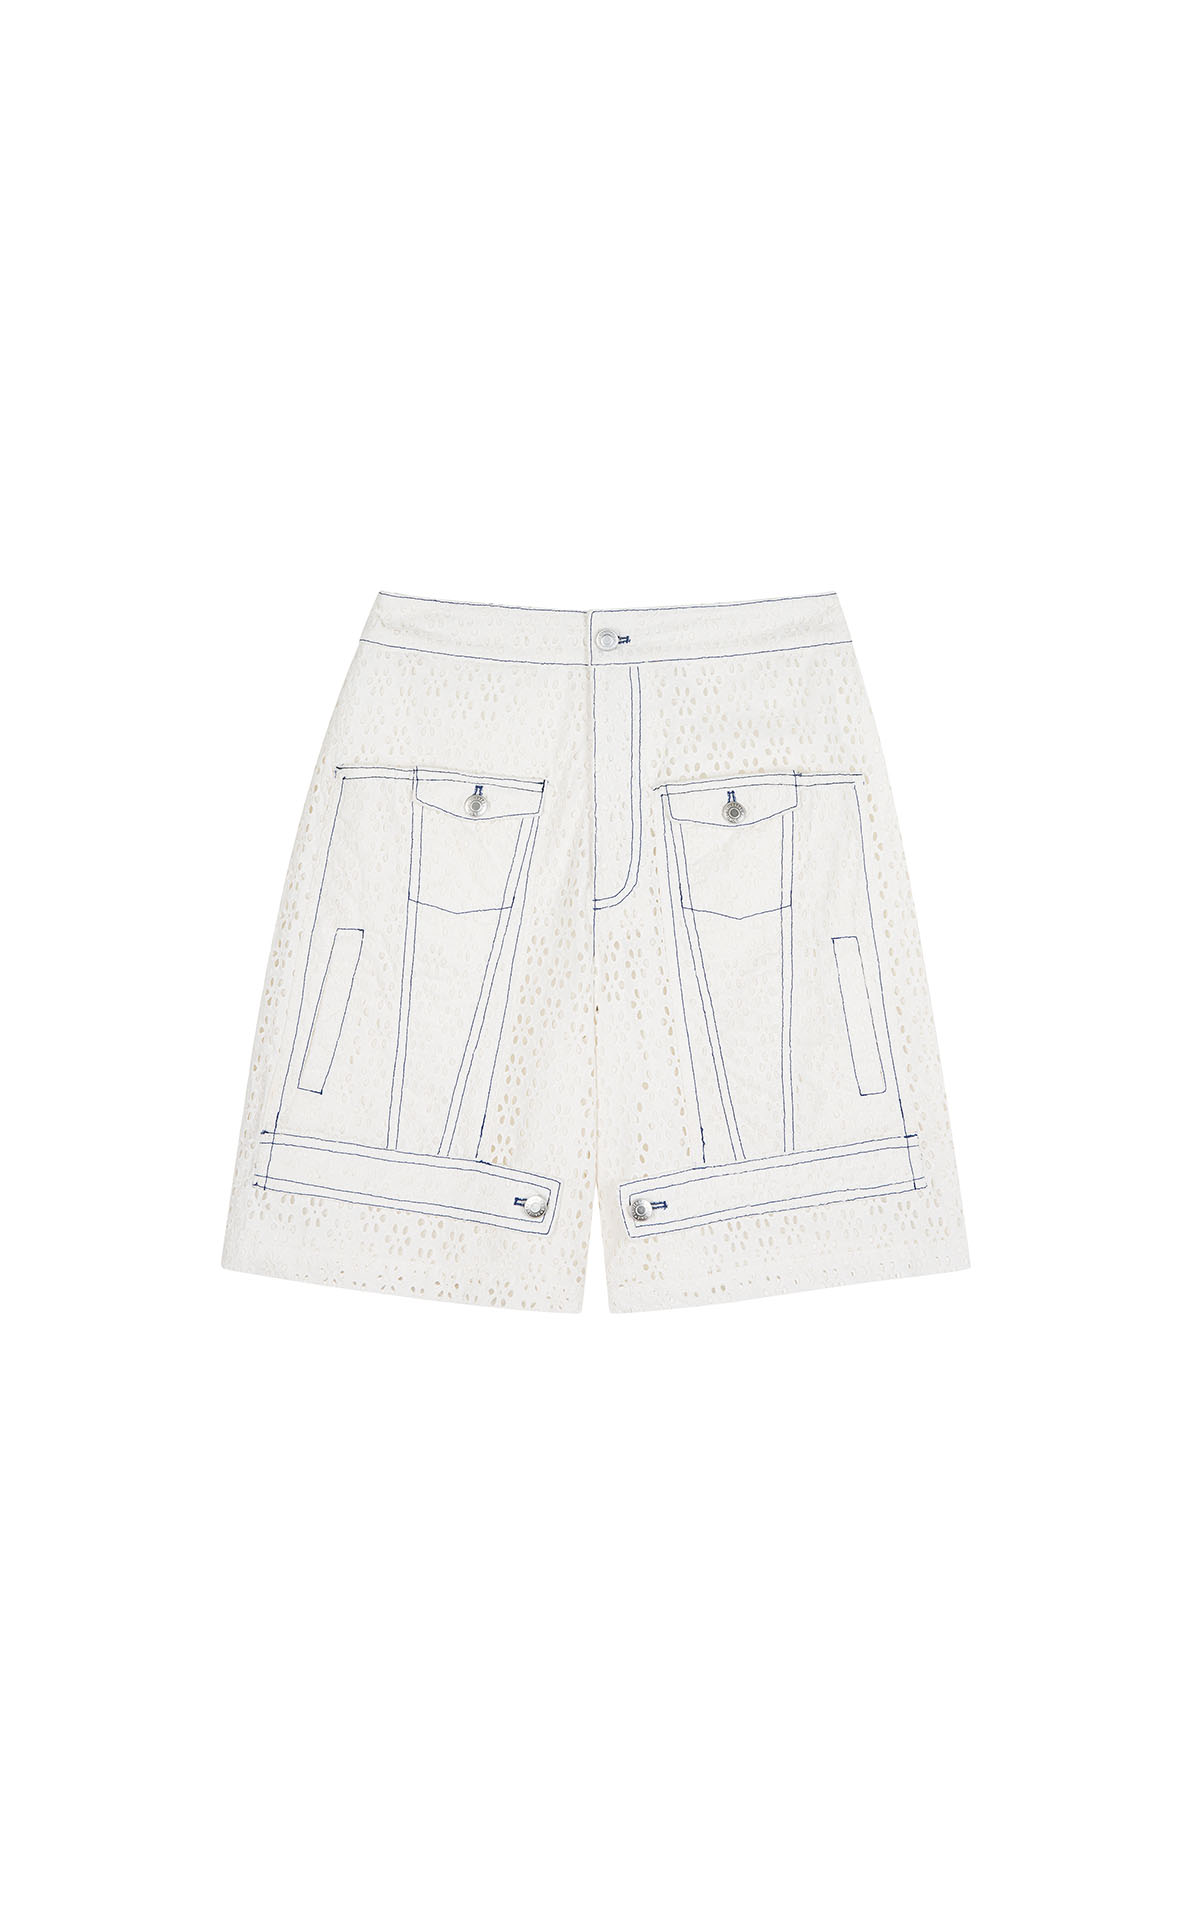 Claudie Pierlot white lace shorts at the bicester village shopping collection